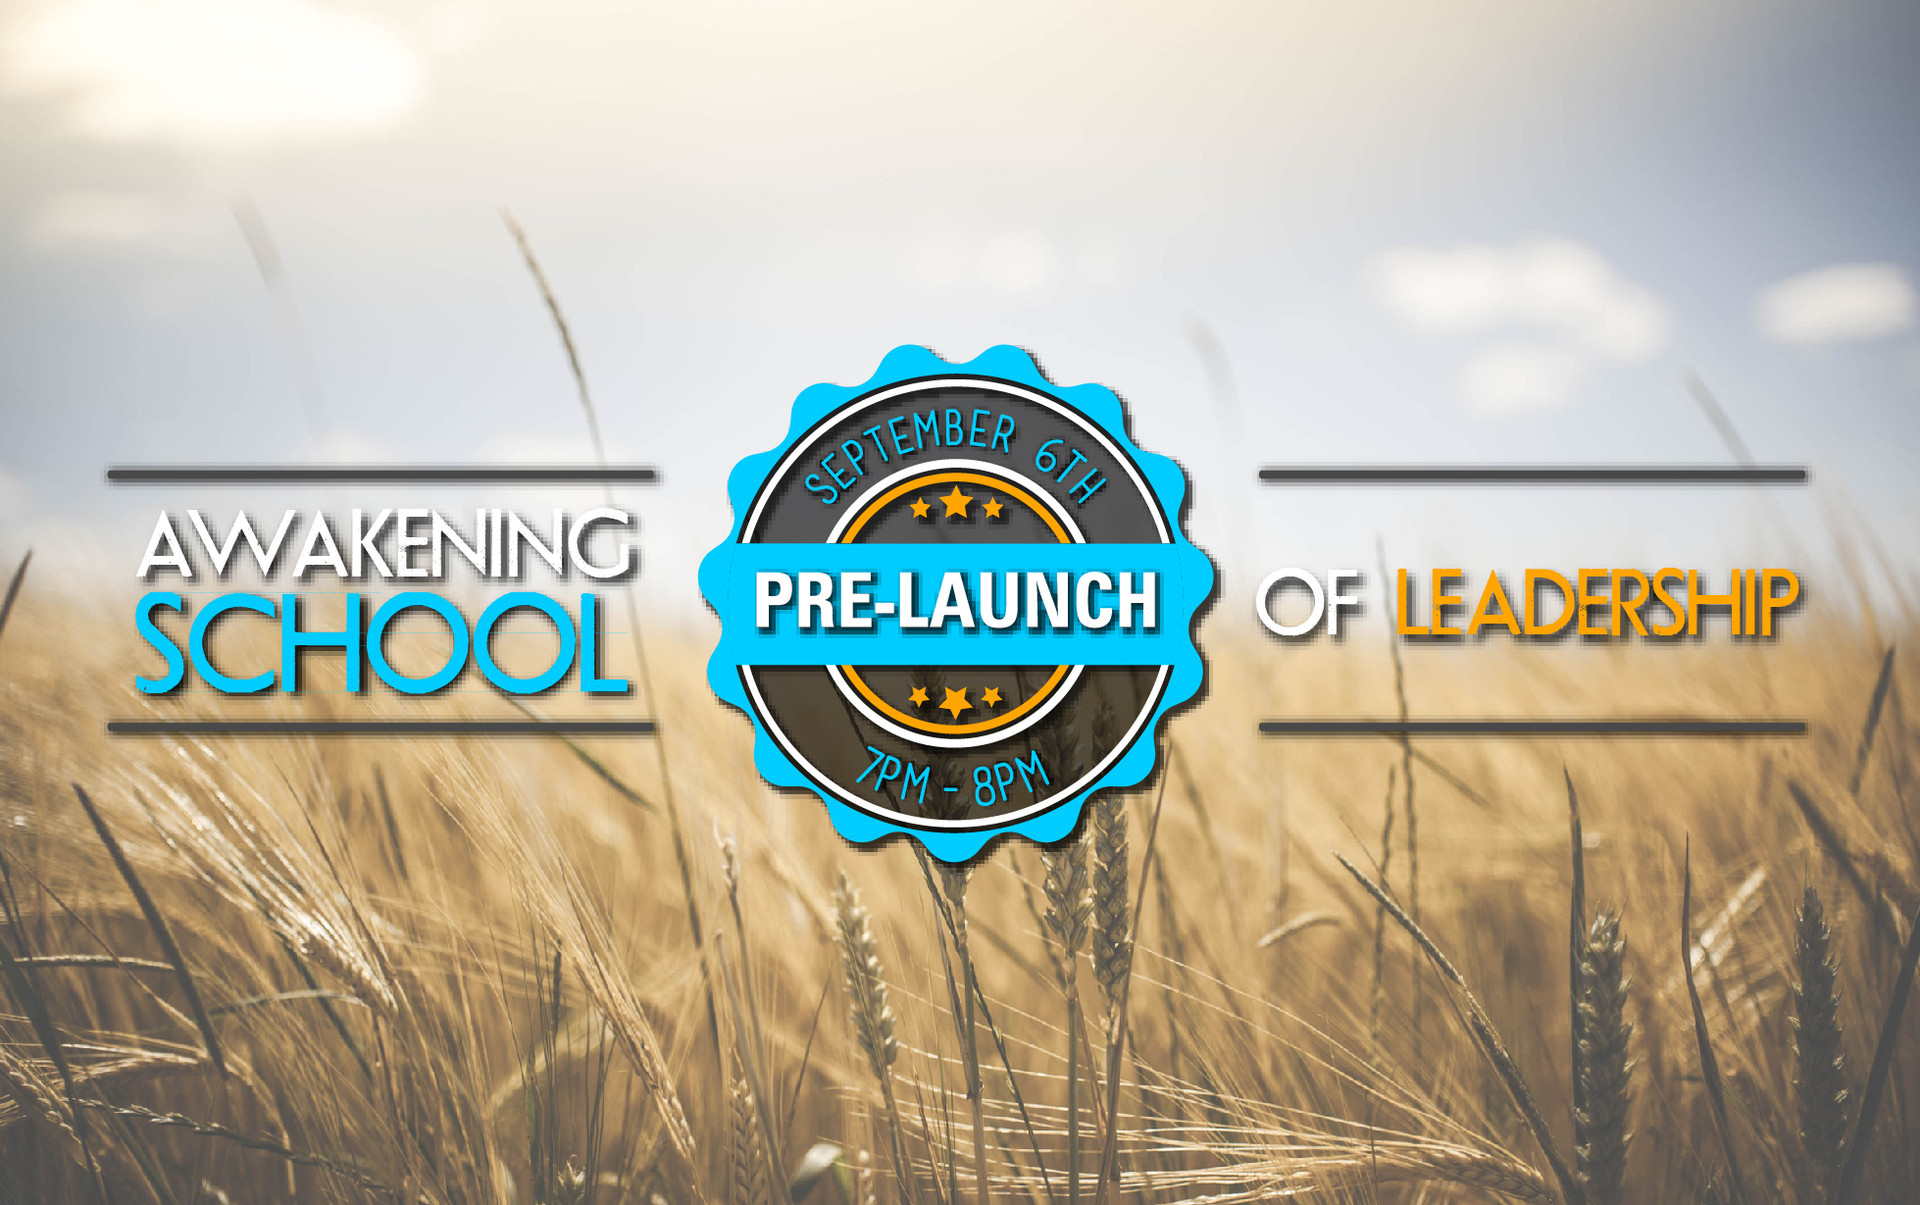 Awakening School PRELAUNCH